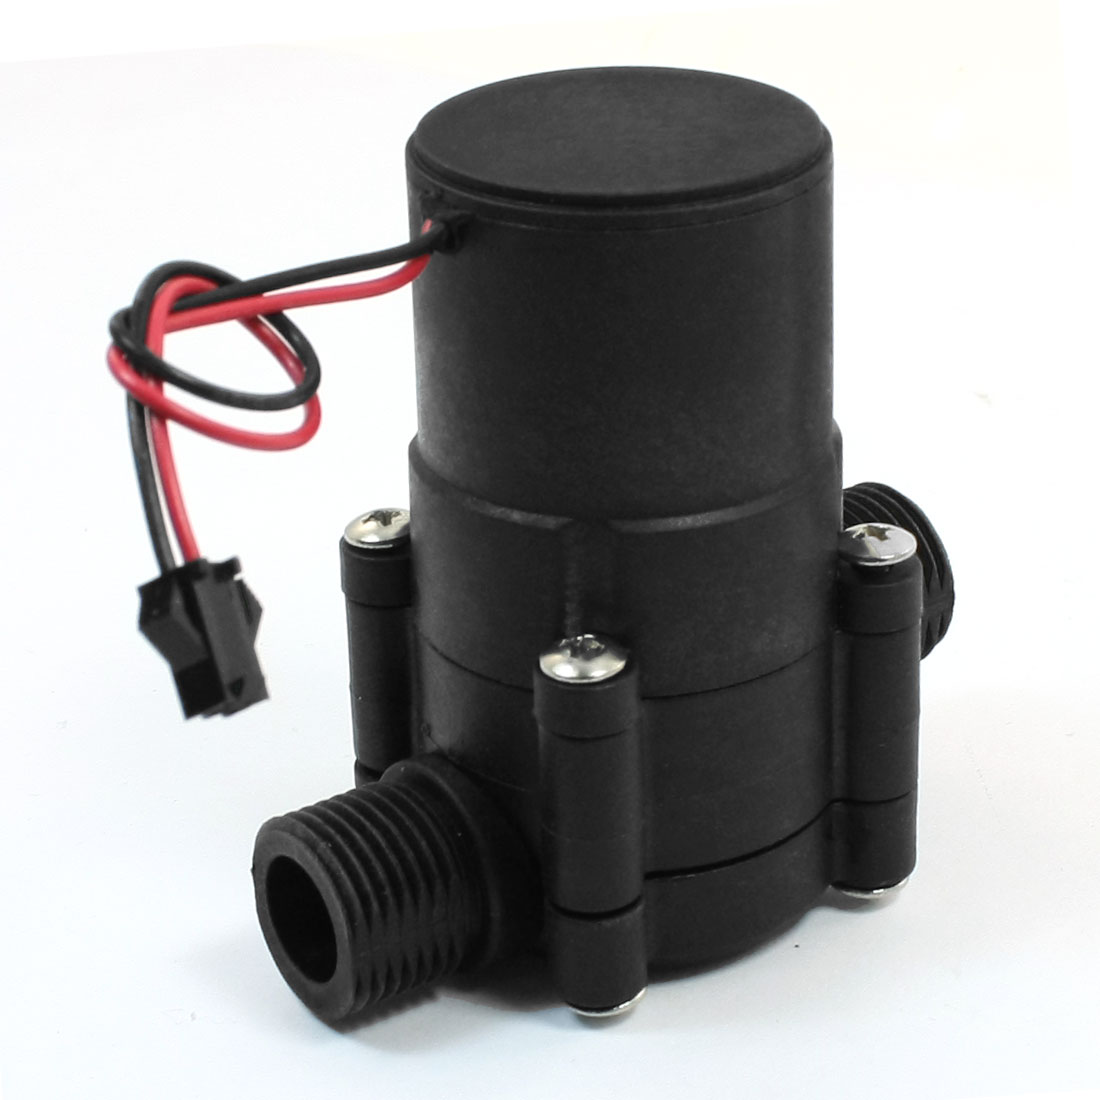 DC 12V 20mm Male Thread Portable Pipeline Water-power Mini Generator